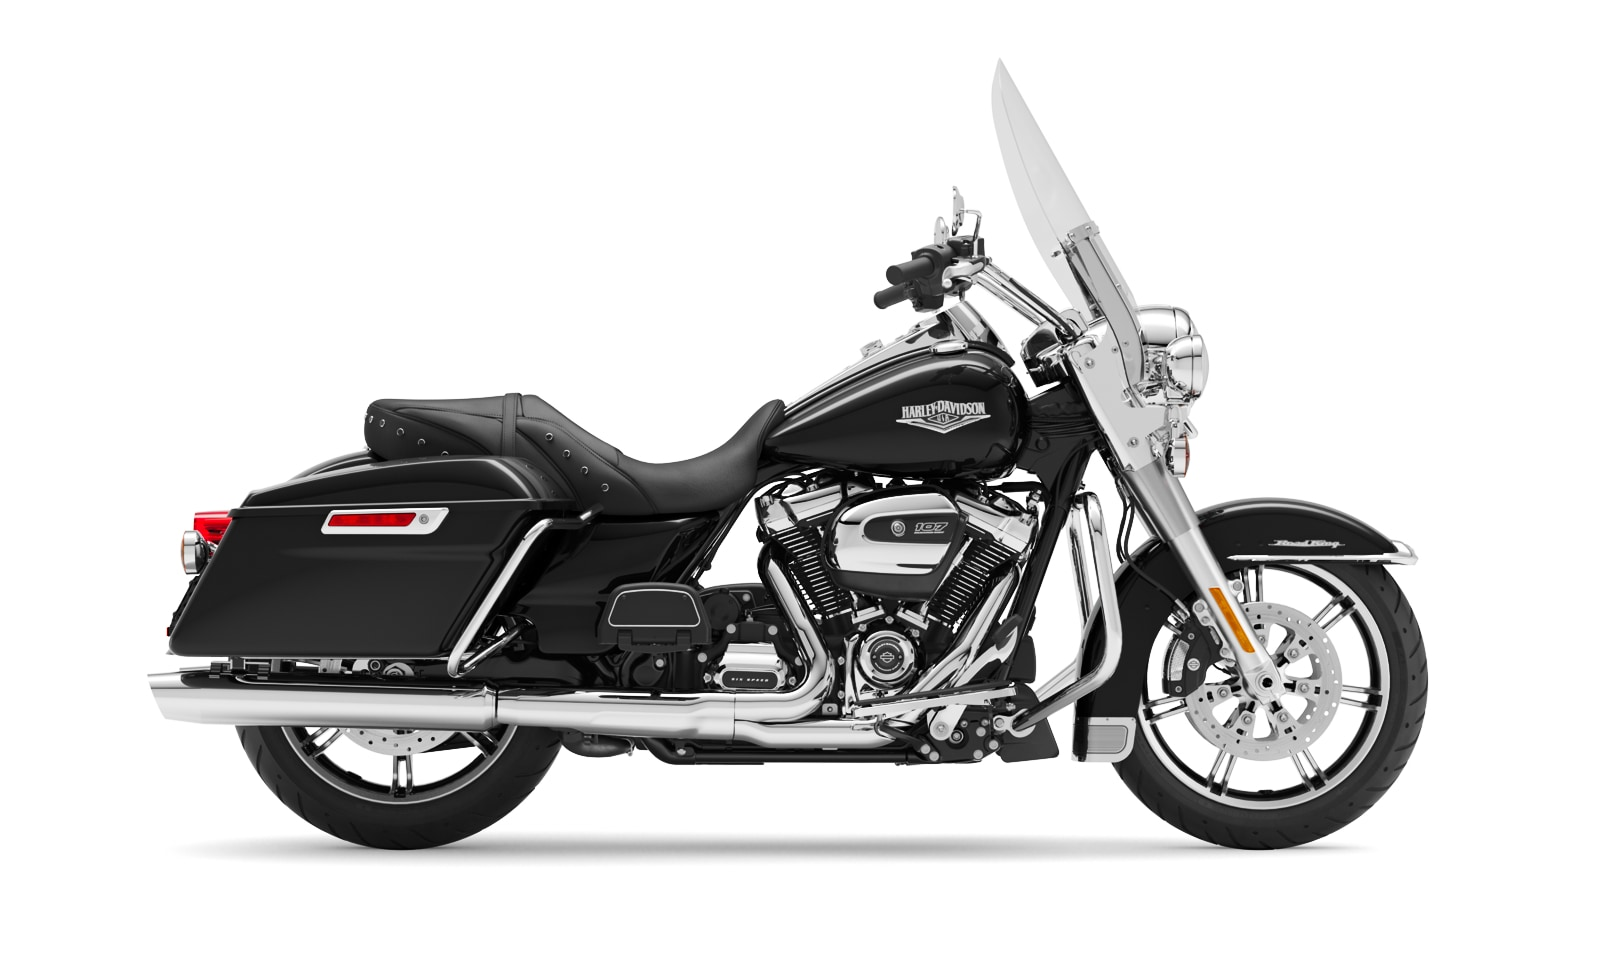 Free Download: 2002 Road King Service Manual | ePANEL ... on 1995 evinrude wiring diagram, 1995 hd sportster wiring diagram, 1995 dodge truck wiring diagram, 1995 ford truck wiring diagram,